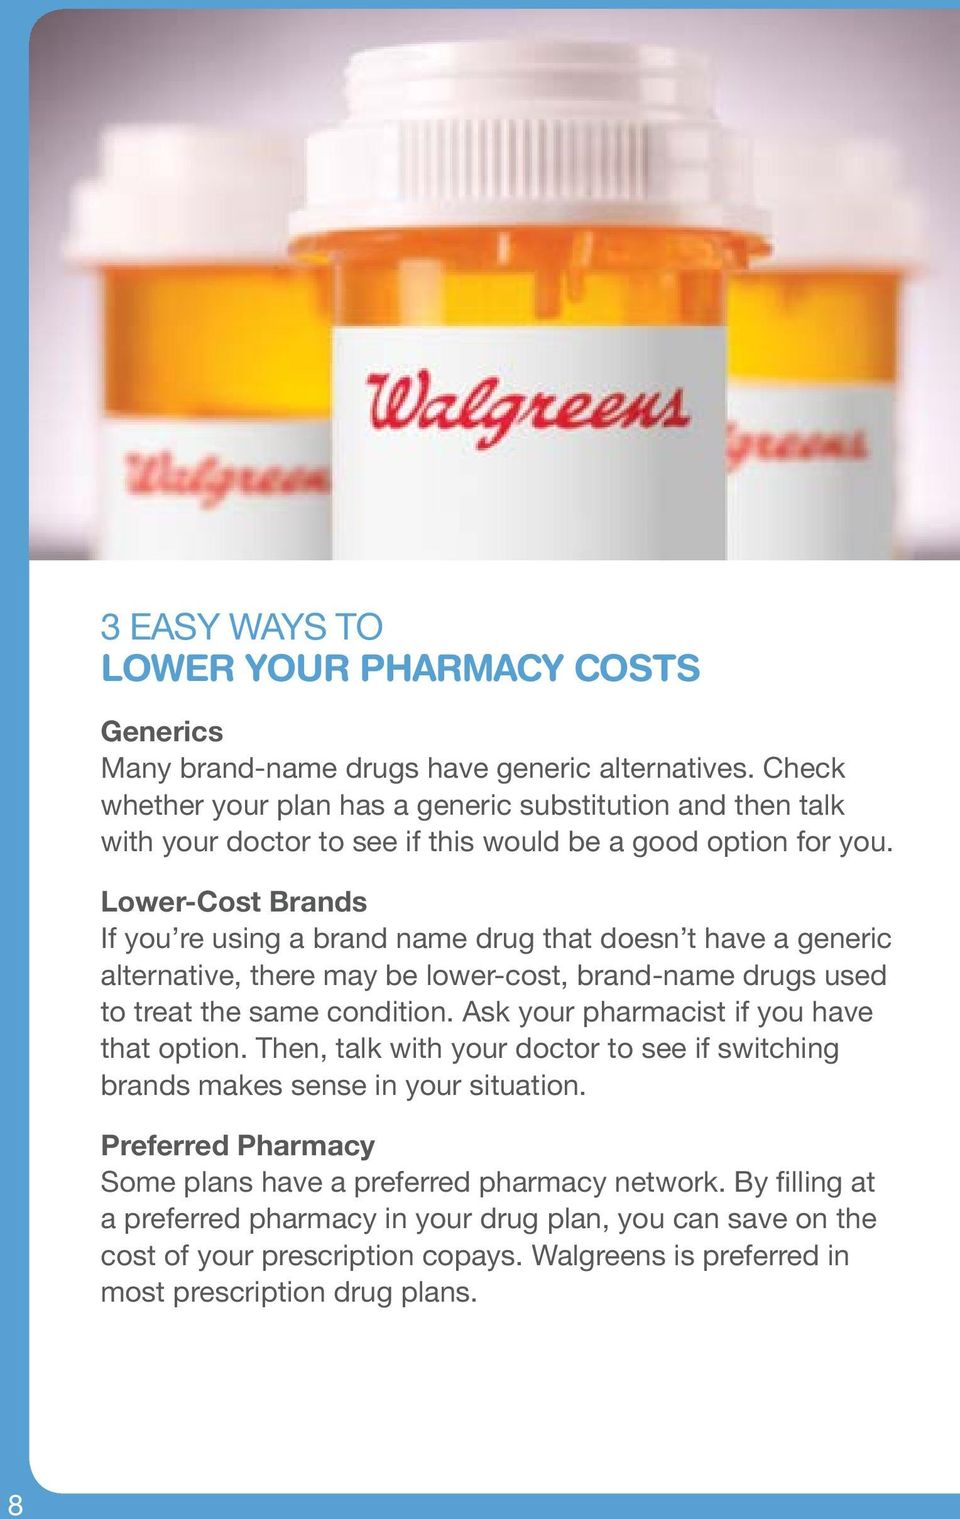 Lower-Cost Brands If you re using a brand name drug that doesn t have a generic alternative, there may be lower-cost, brand-name drugs used to treat the same condition.